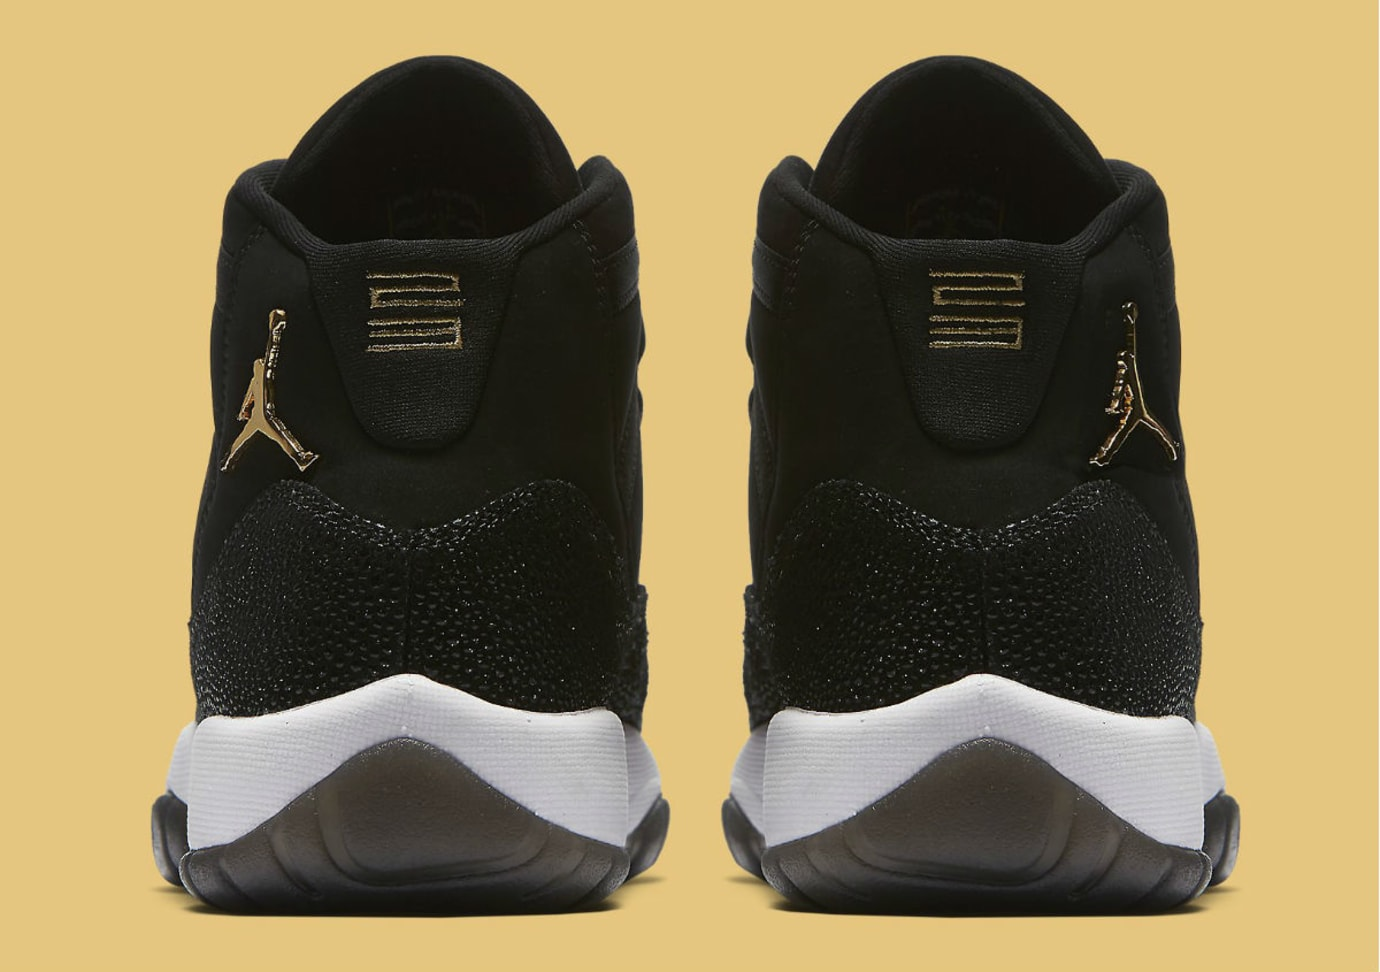 e519e54bc667 Air Jordan 11 XI Heiress Collection Black Gold Release Date 852625 ...